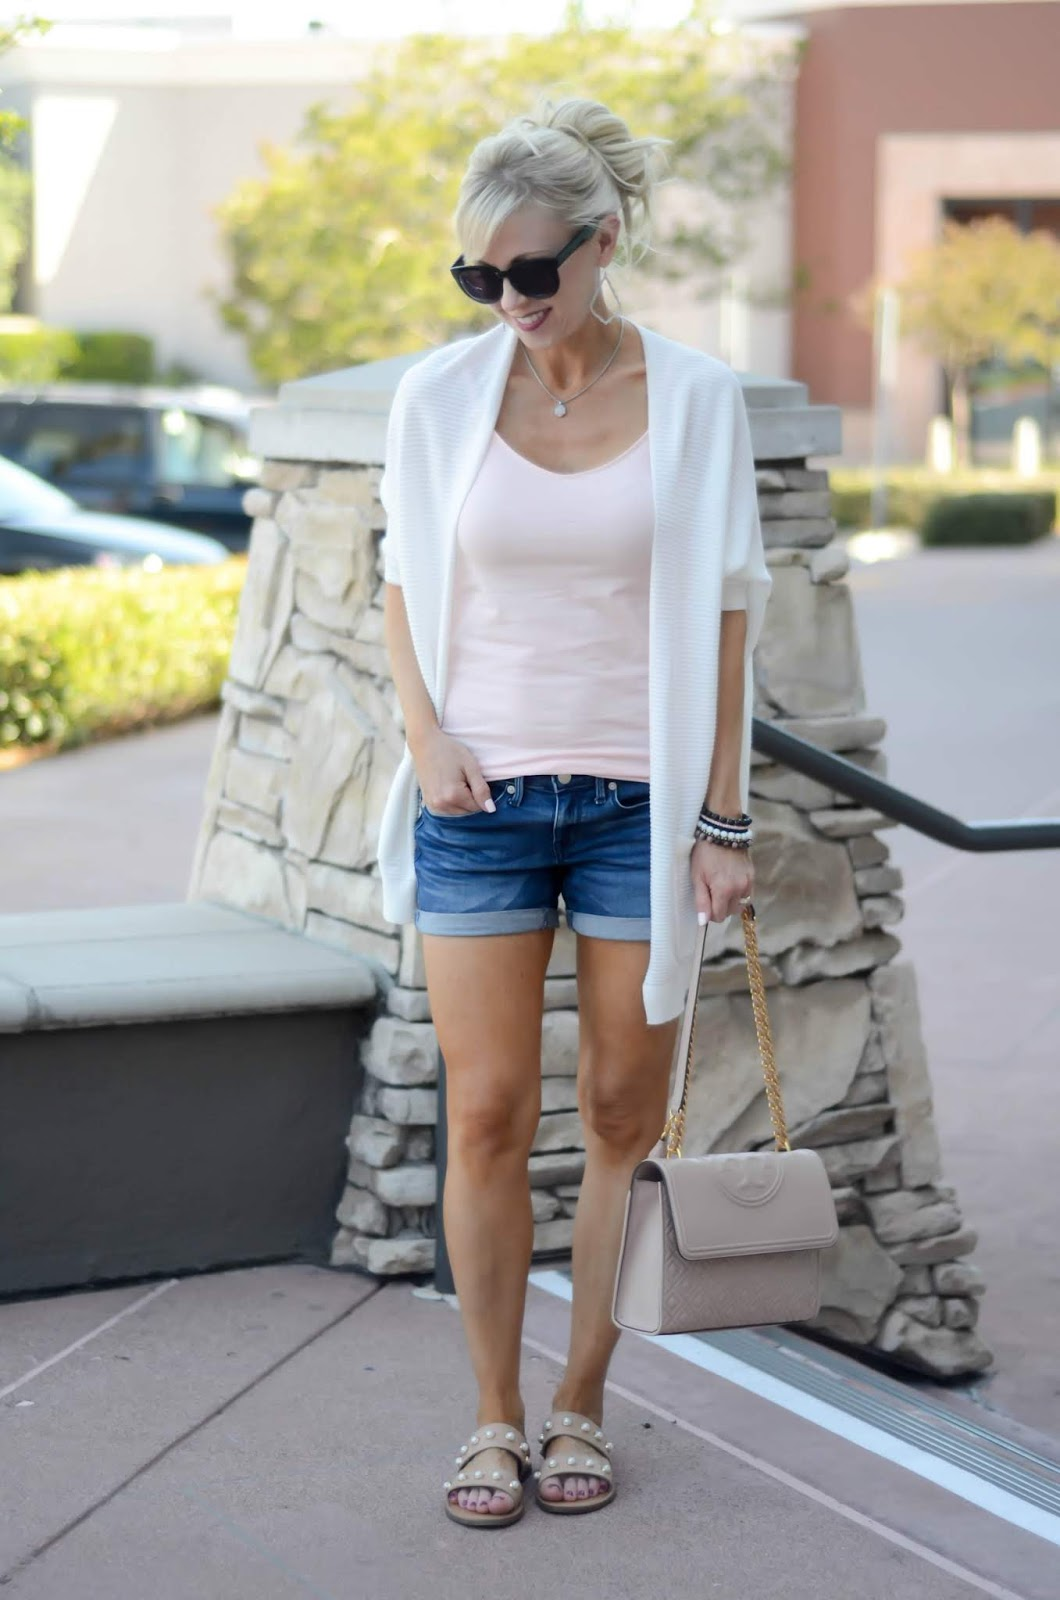 b482a78de5 White Cardigan Outfits + Echo Look Preview   On the Daily ...